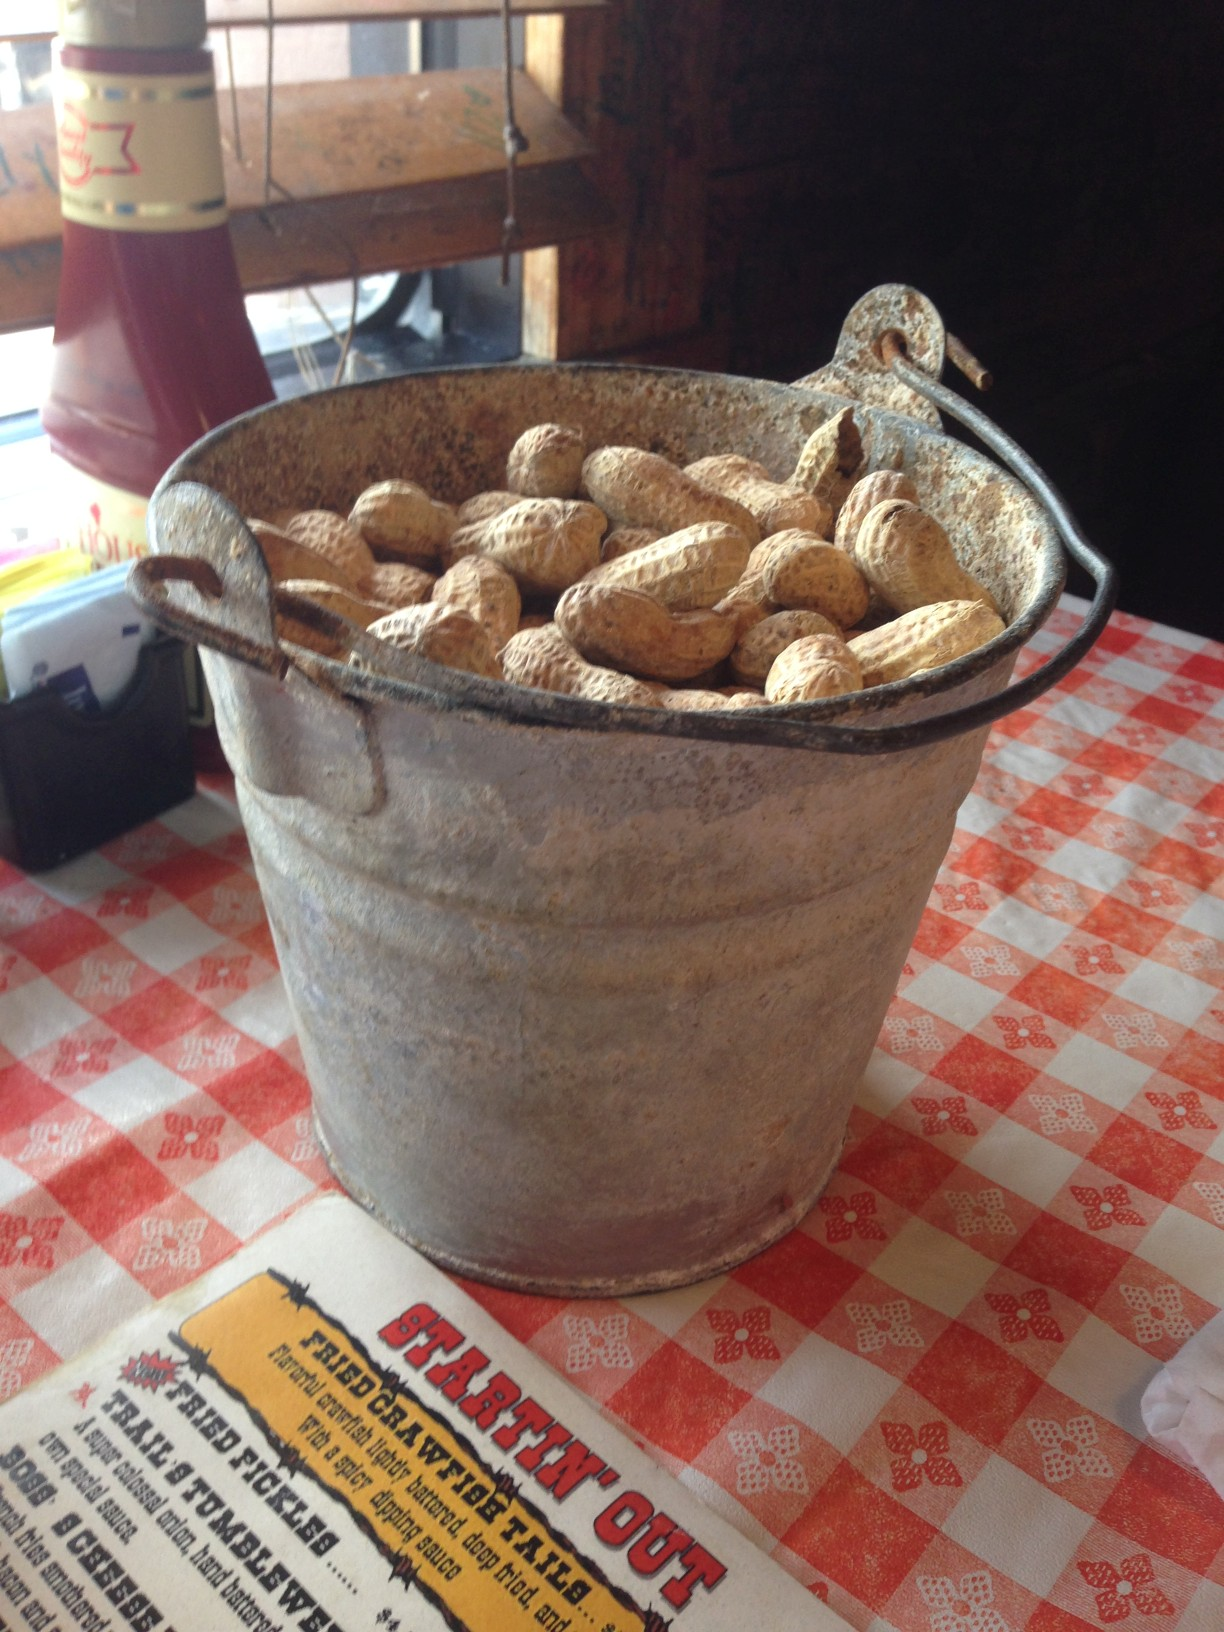 You can even eat peanuts while you wait on your food.